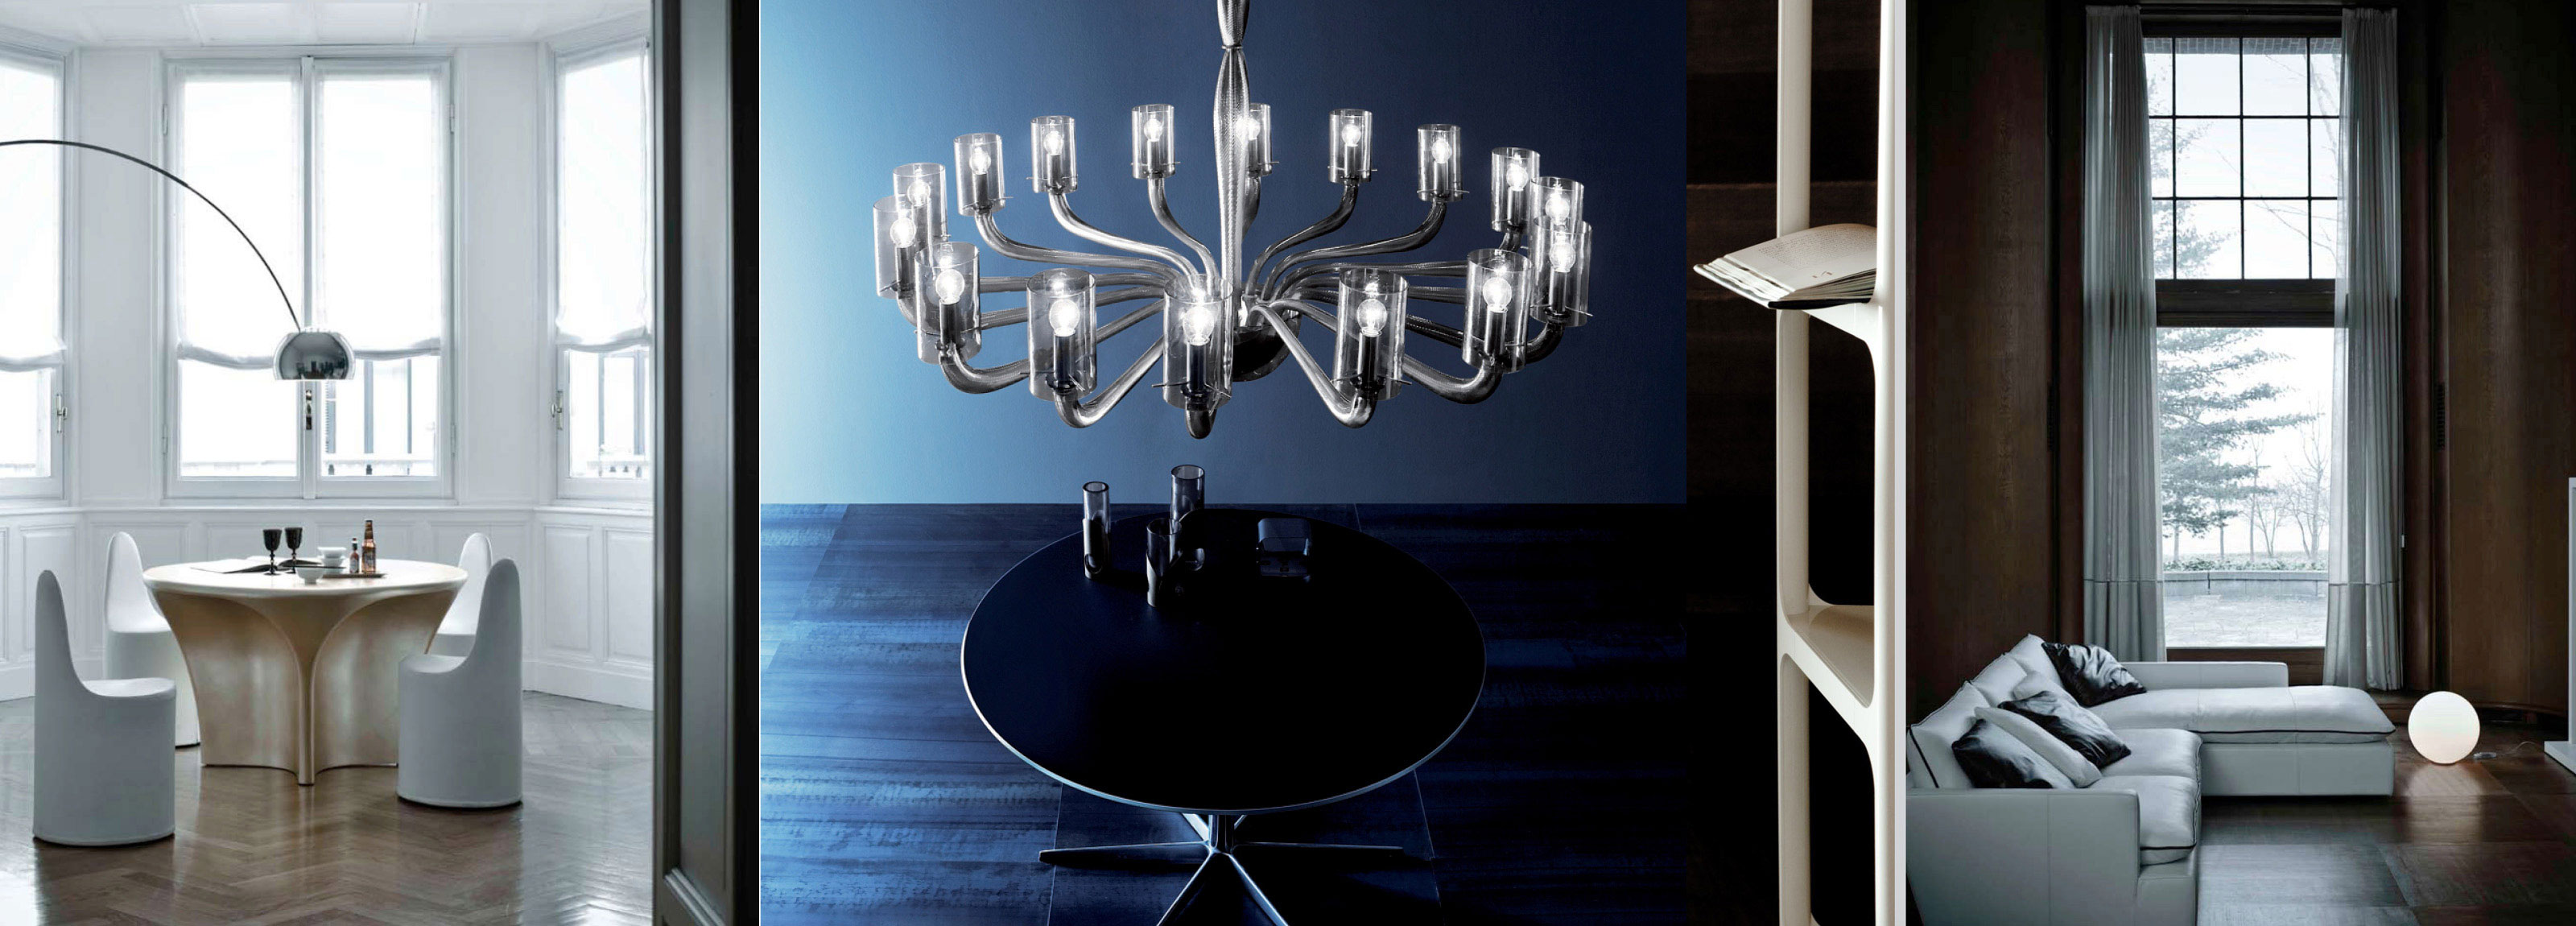 Hangar Design Group with its creativity reinterprets a Venetian chandelier